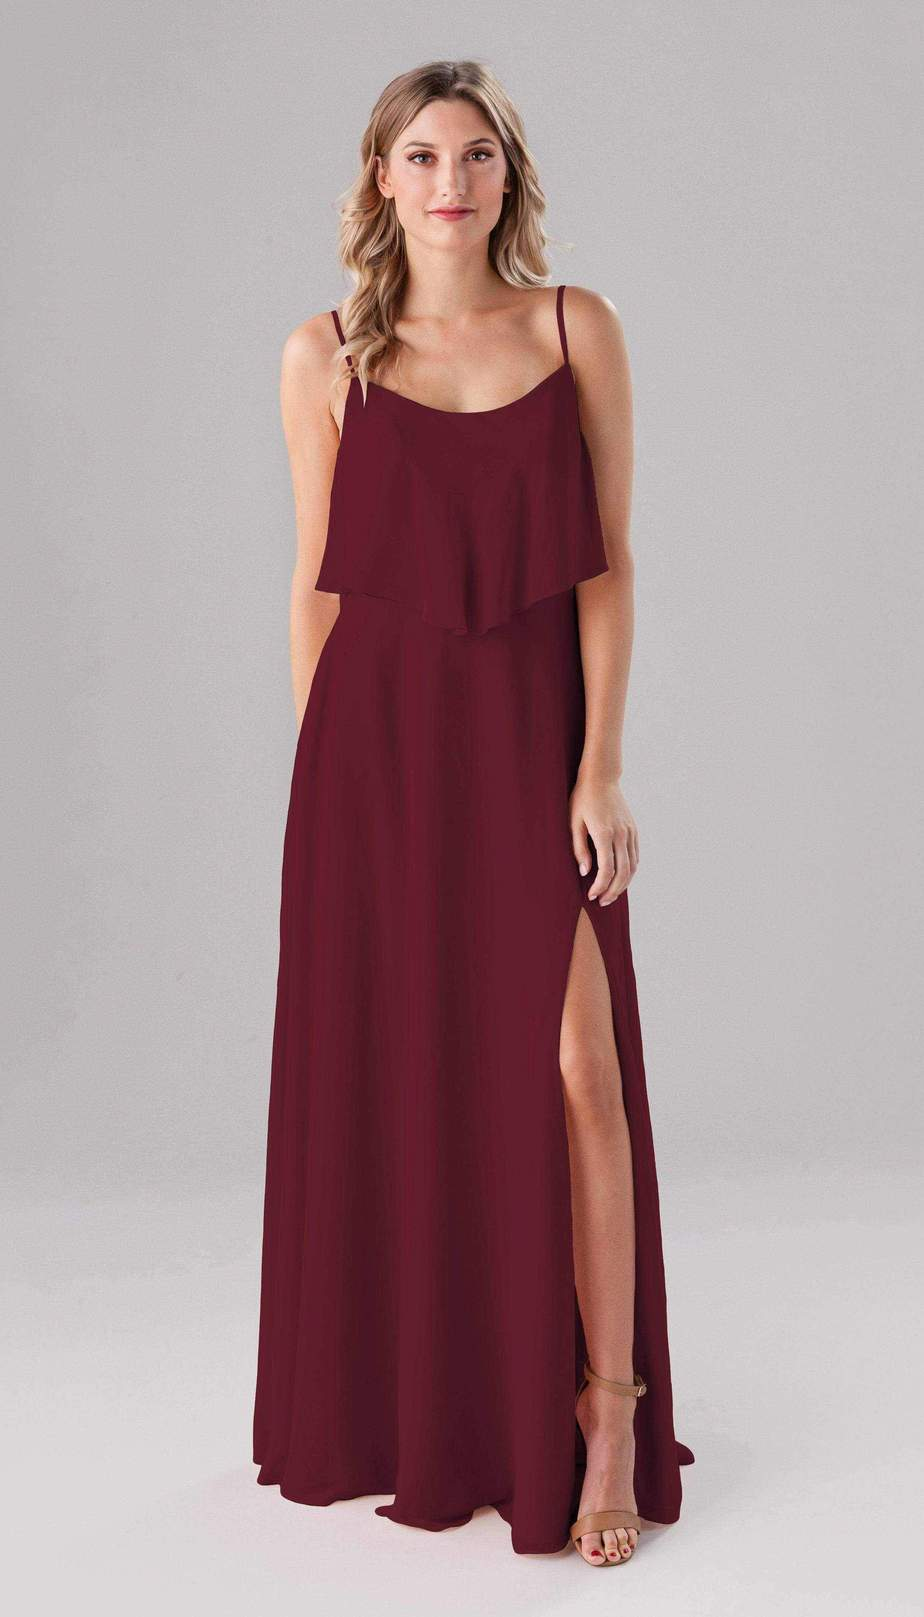 long merlot color bridesmaid dress